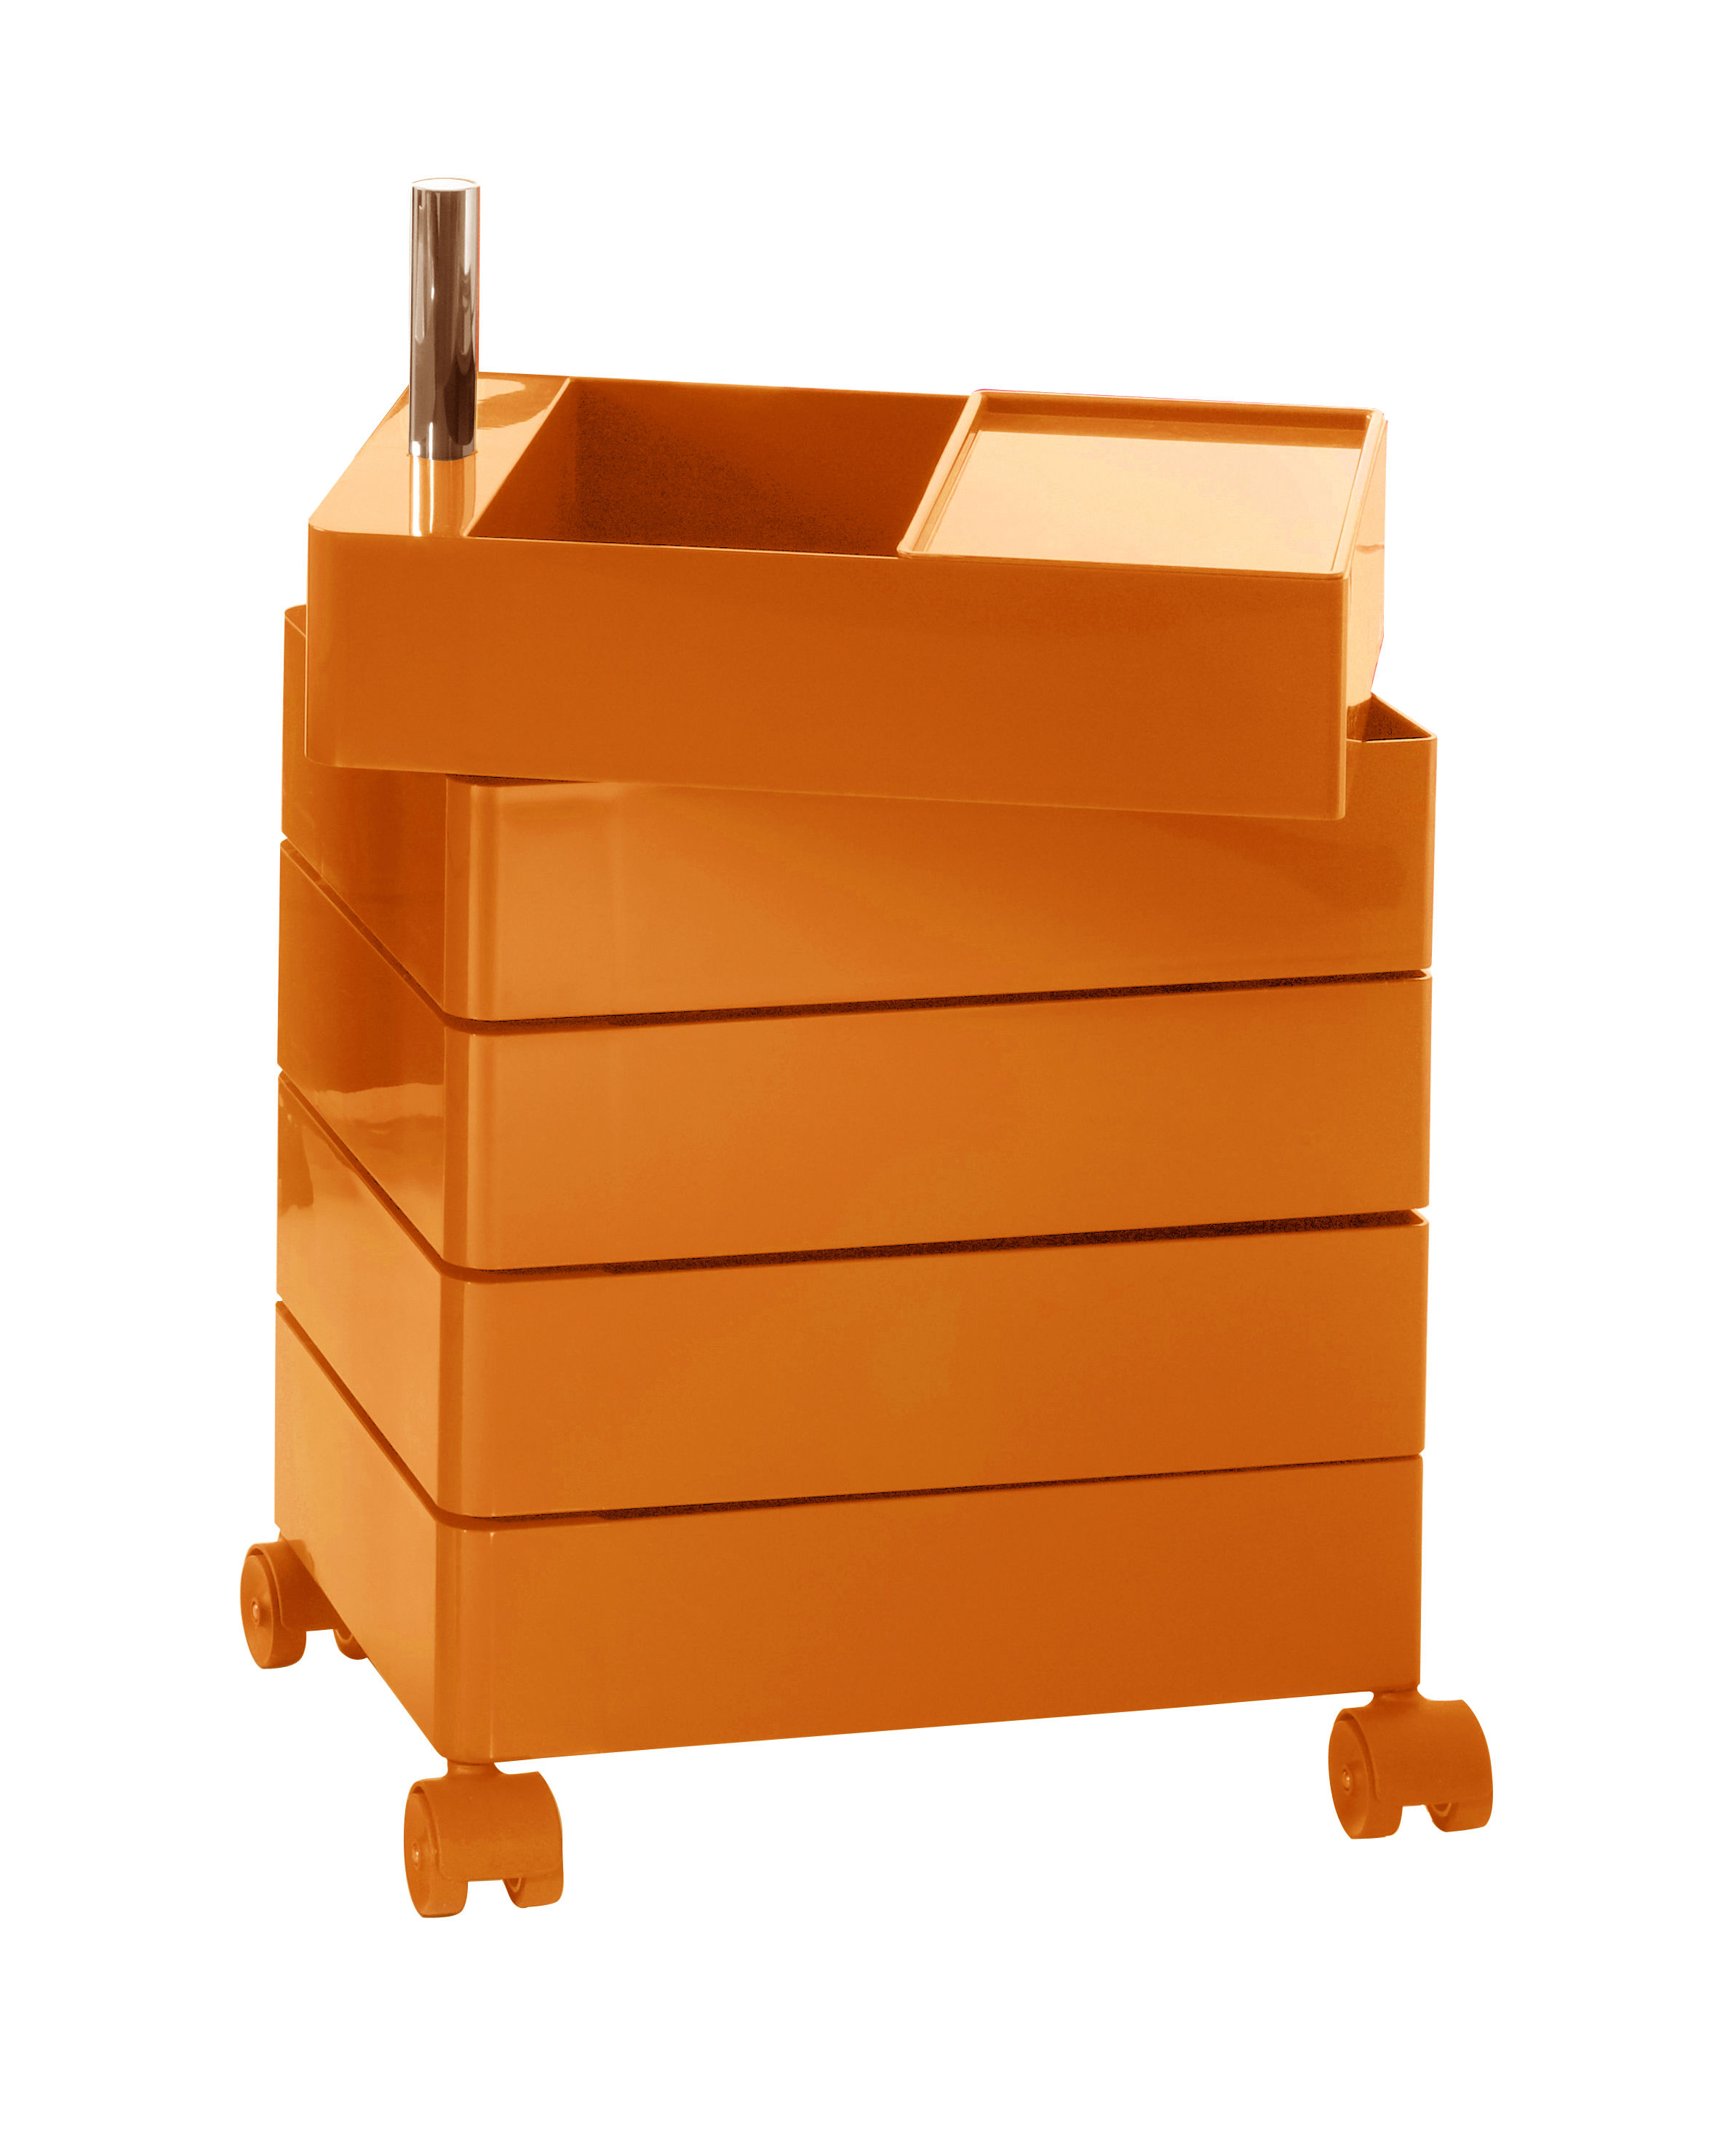 Furniture - Teen furniture - 360° Mobile container - 5 drawers by Magis - Glossy orange - Aluminium, Lacquered ABS